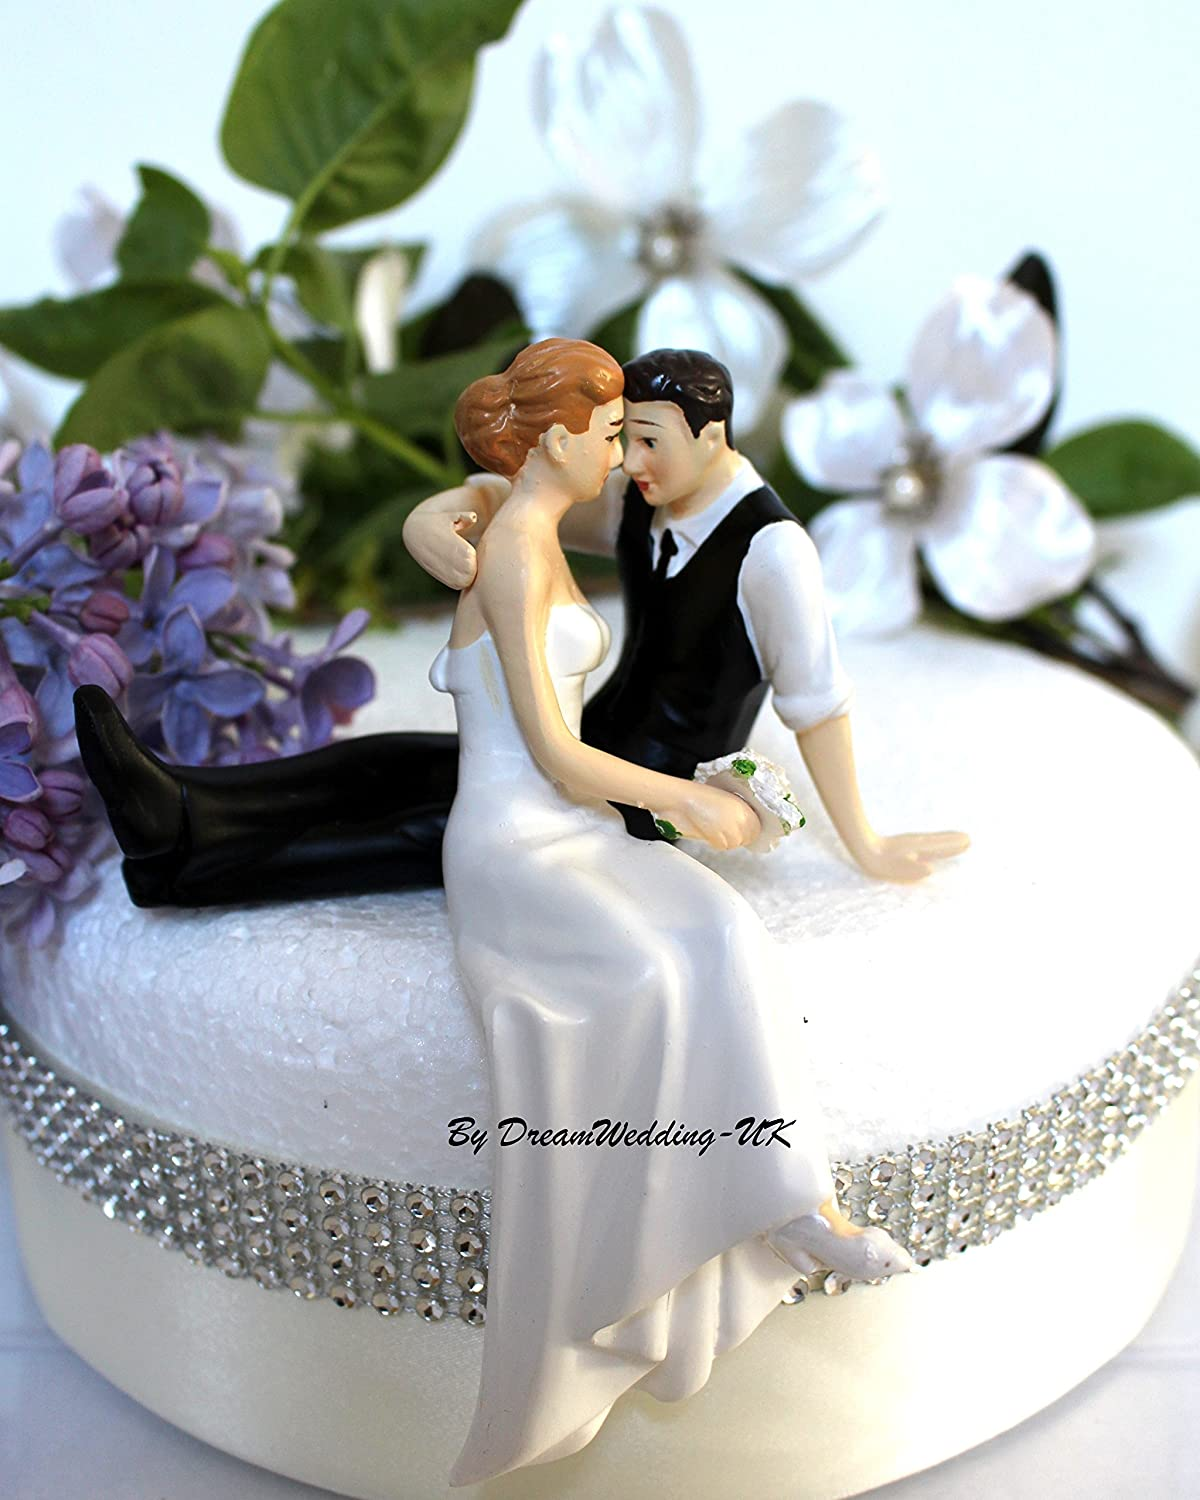 DreamWeddingUK The Look Of Love Wedding Cake Topper Bride And - Present Wedding Cake